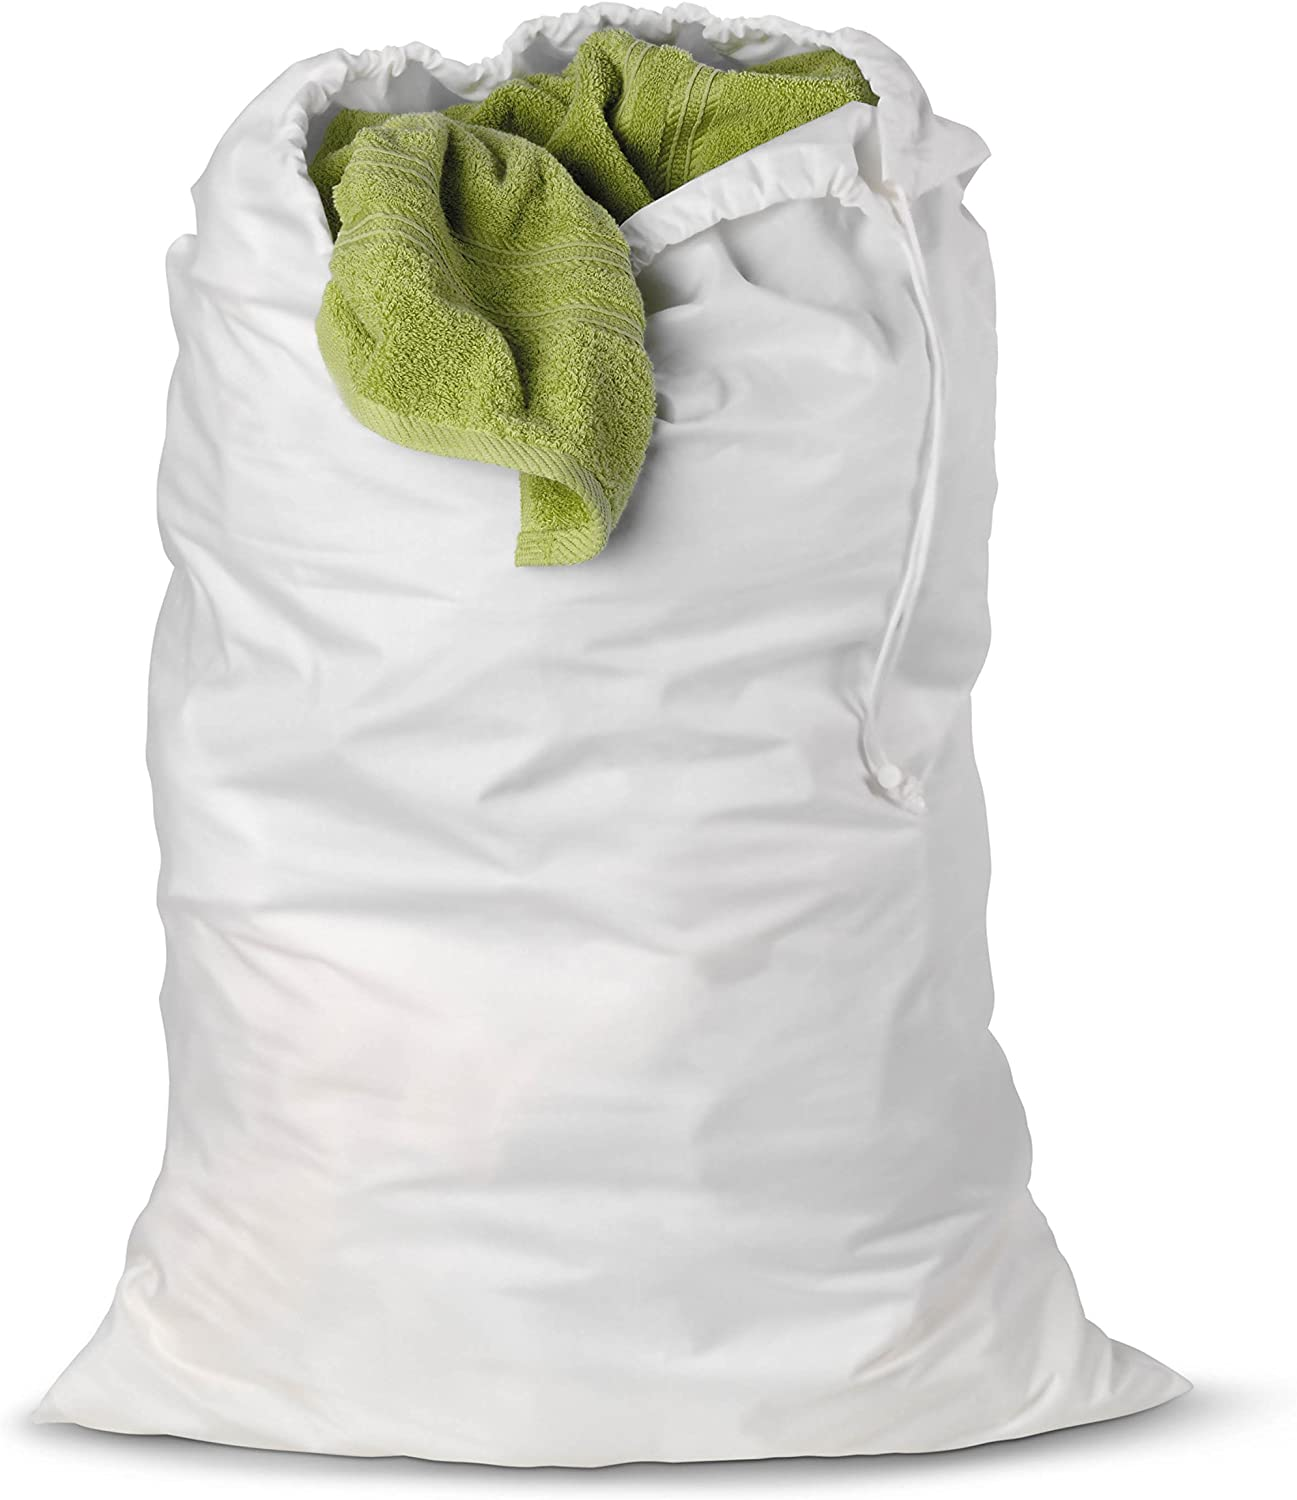 Honey-Can-Do LBG-01140 Cotton Laundry Bag, White